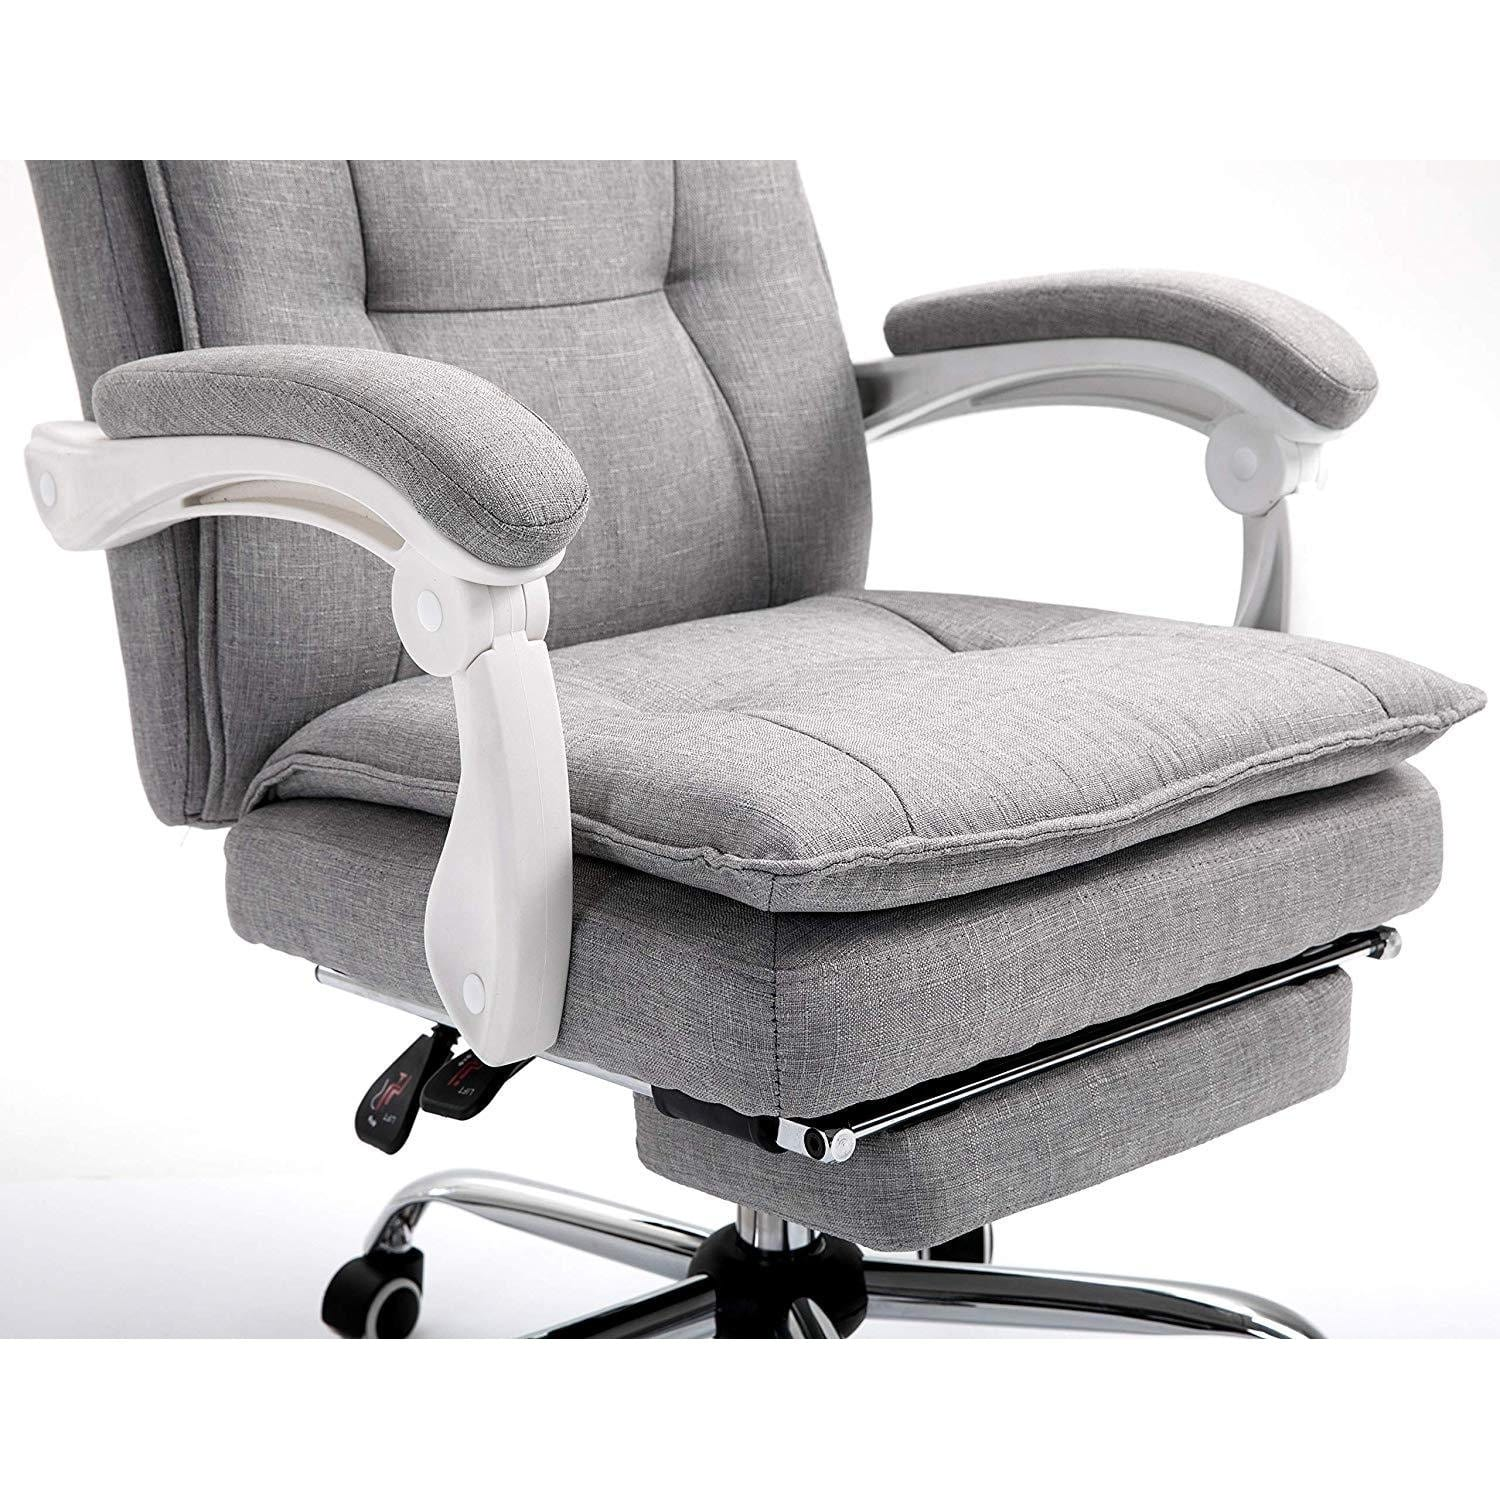 Executive Double Layer Padding Recline Office Desk Chair With Footrest Mr77 Grey Fabric Shop Designer Home Furnishings